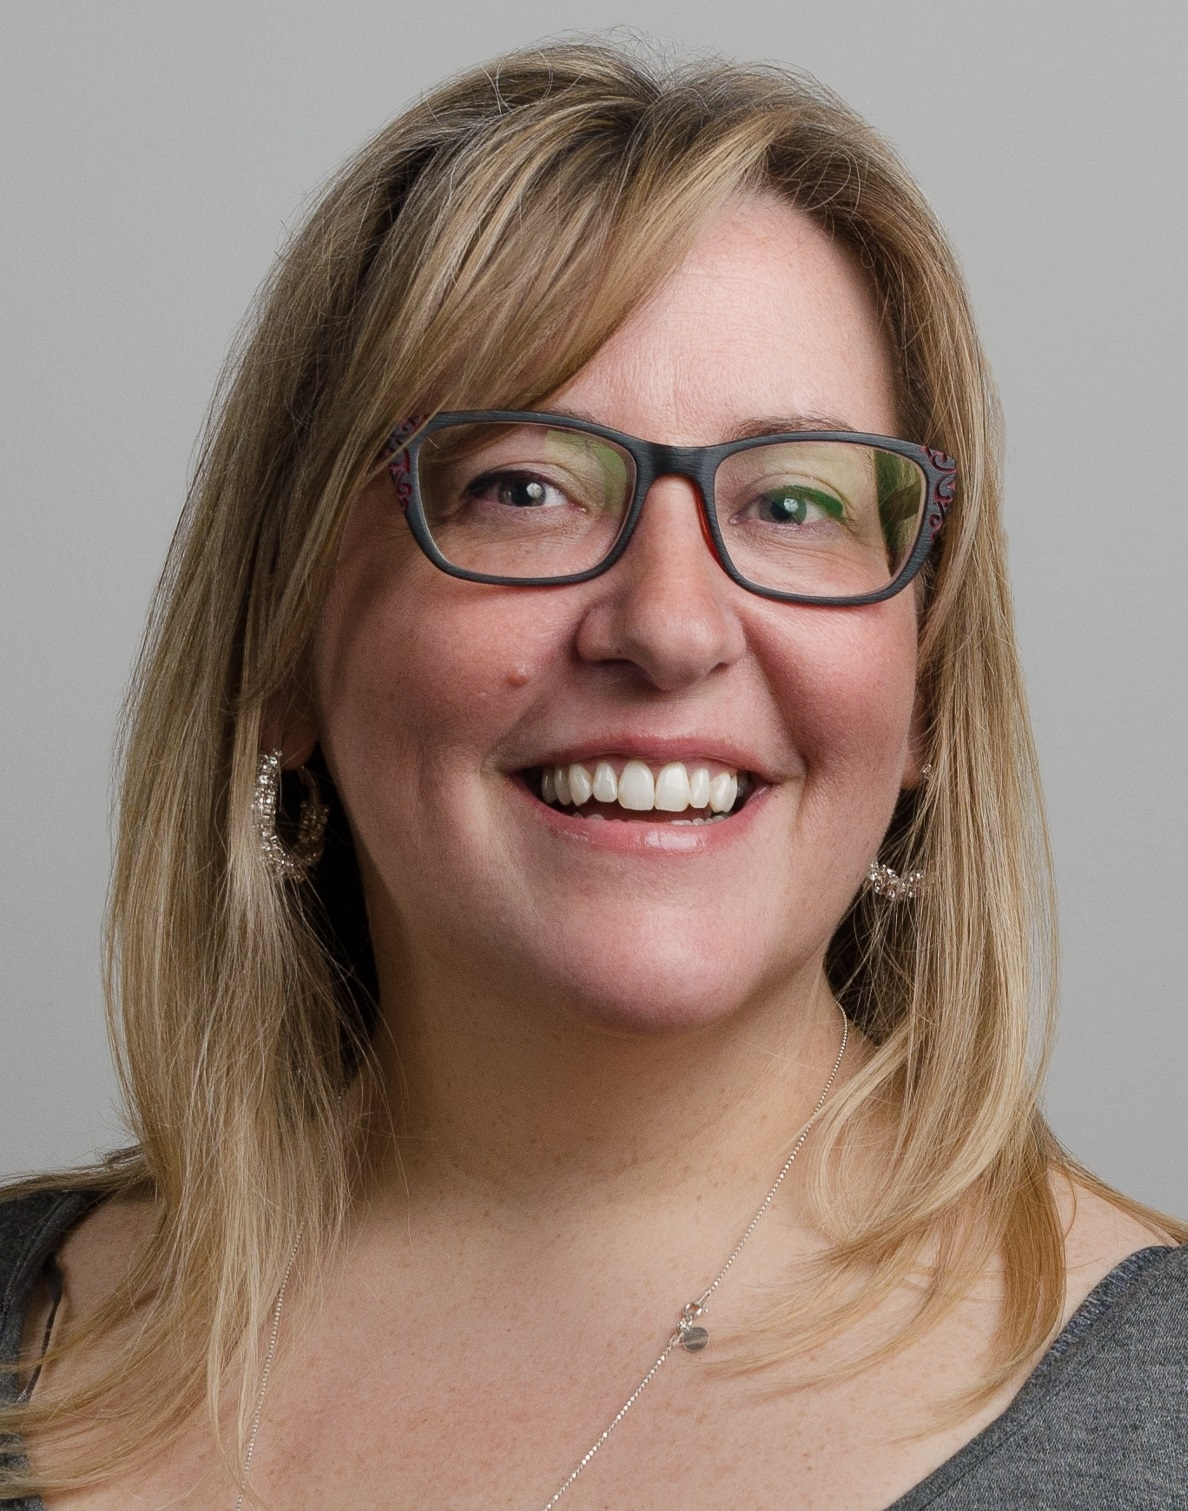 Headshot of Susan Ingram, BBBSO Executive Director